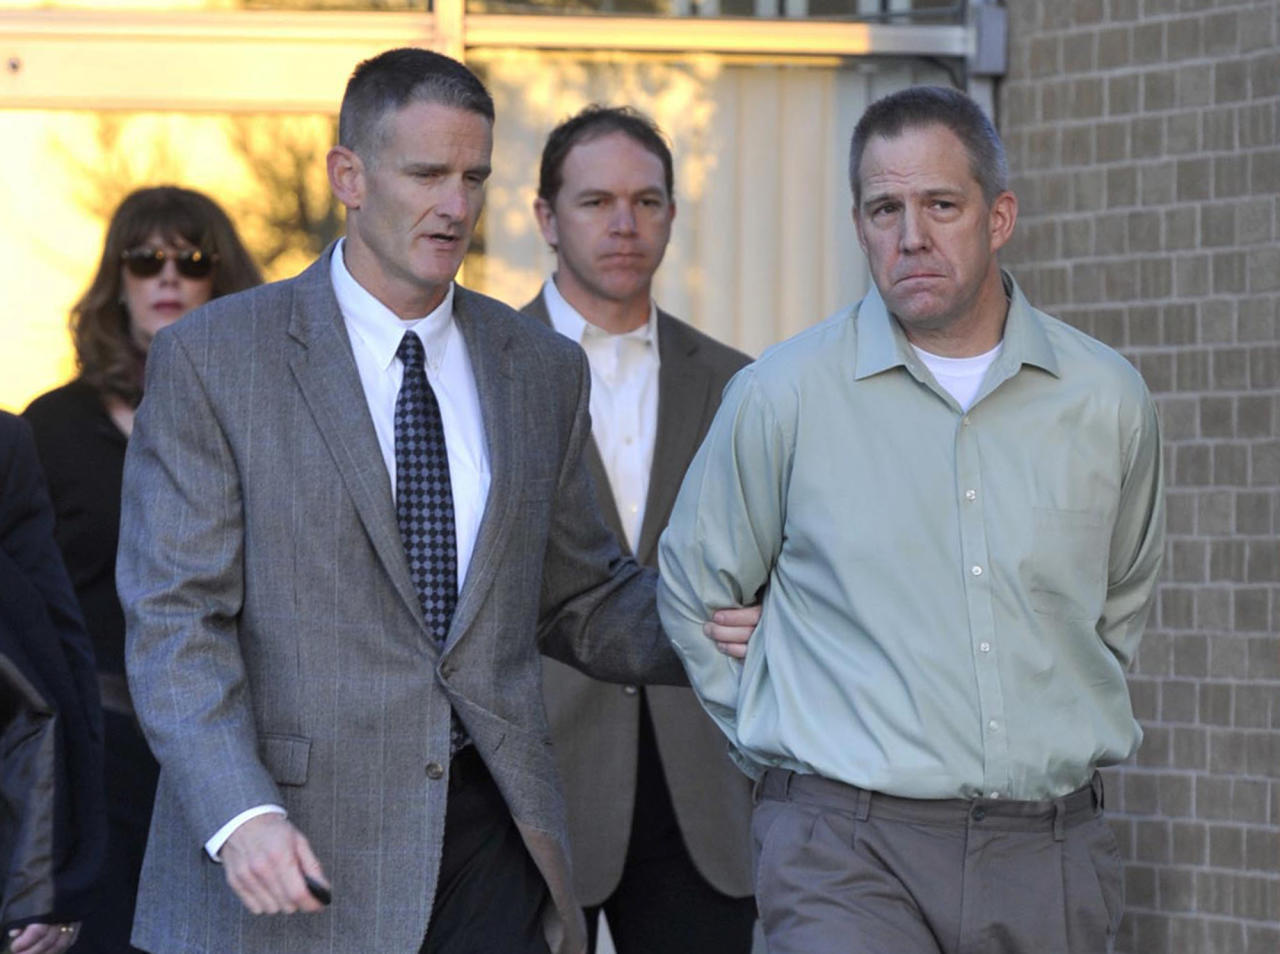 JetBlue pilot Clayton Frederick Osbon, right, is escorted to a waiting vehicle by FBI agents as he is released from The Pavilion at Northwest Texas Hospital, in Amarillo Monday, April 2, 2012. Osbon was taken directly to the Federal Court Building in Amarillo, Texas. (AP Photo/Amarillo Globe-News, Michael Schumacher) MANDATORY CREDIT; MAGS OUT; TV OUT